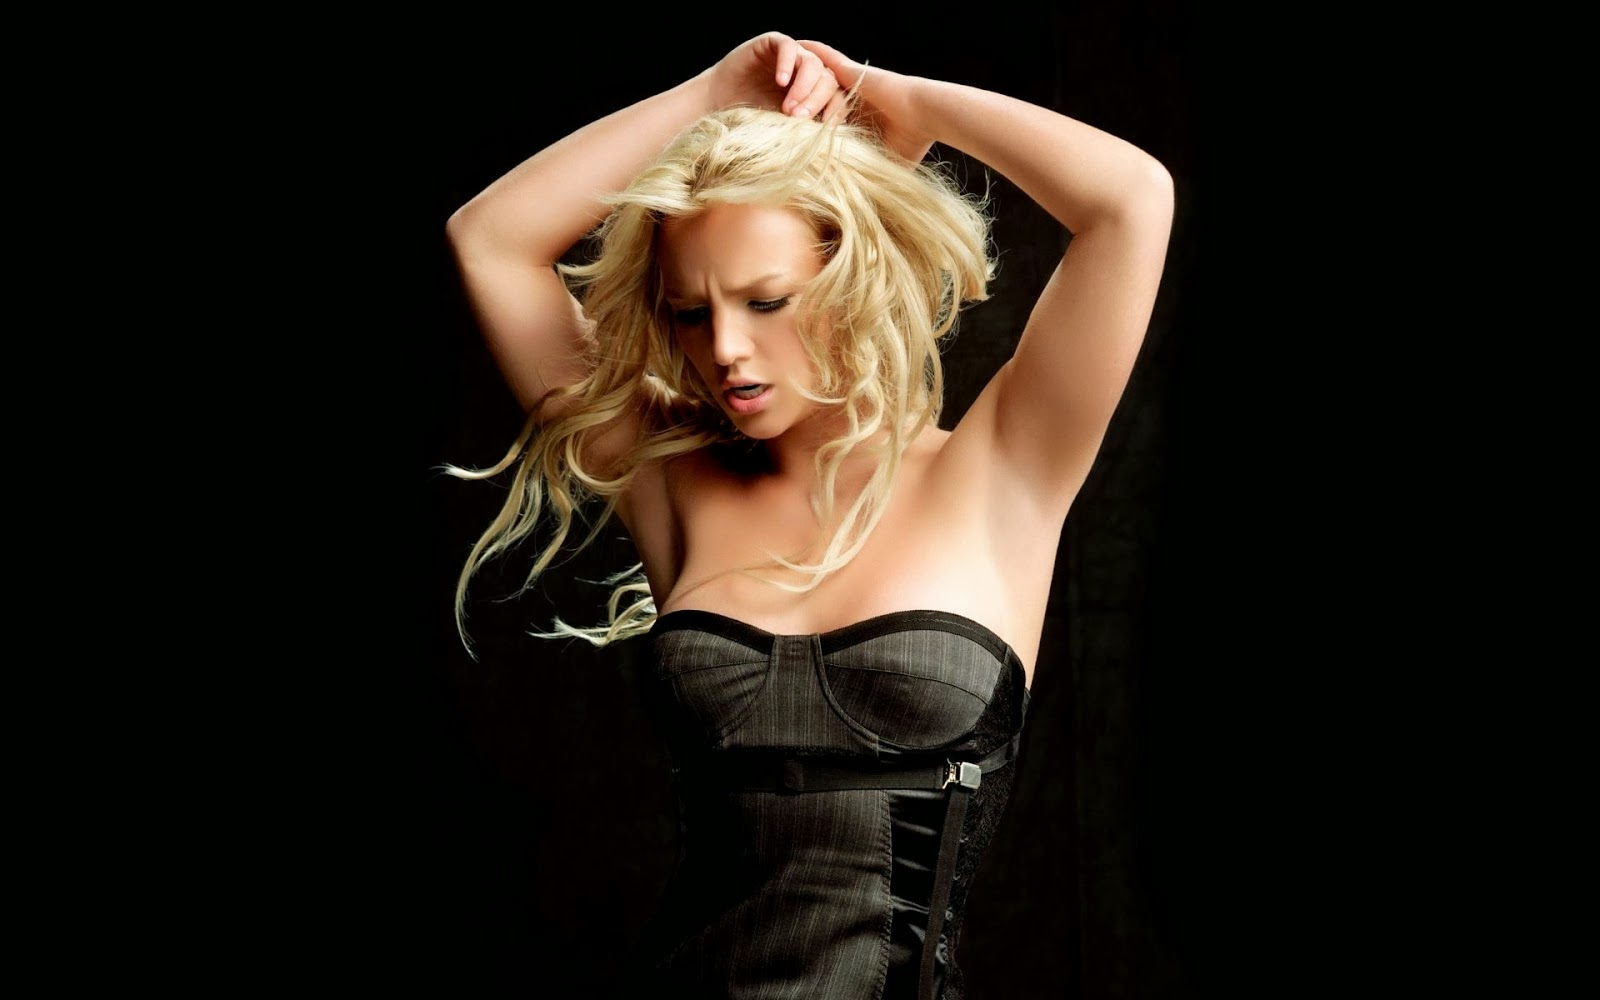 Britney+Spears+Hd+Wallpapers+Free+Download002